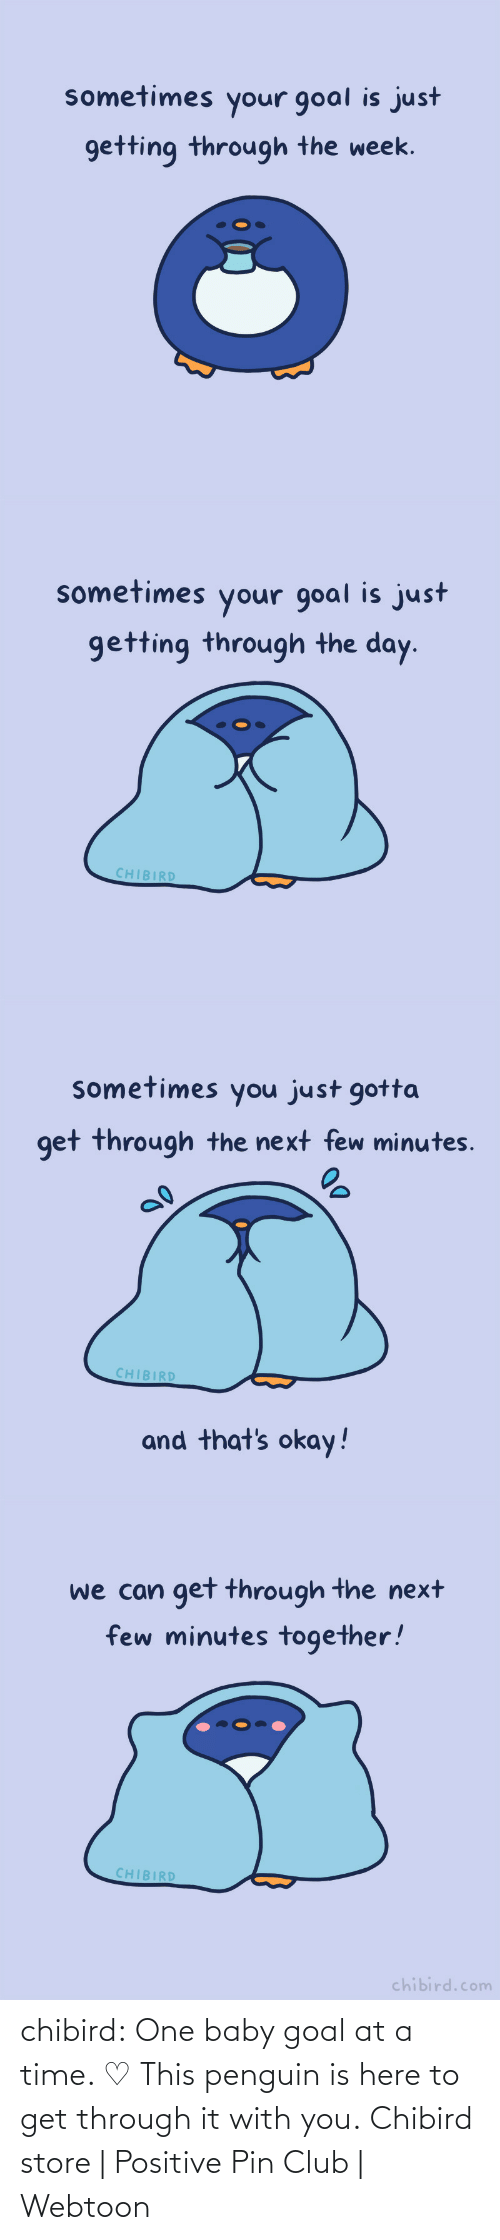 pin: chibird:  One baby goal at a time. ♡ This penguin is here to get through it with you.  Chibird store | Positive Pin Club | Webtoon